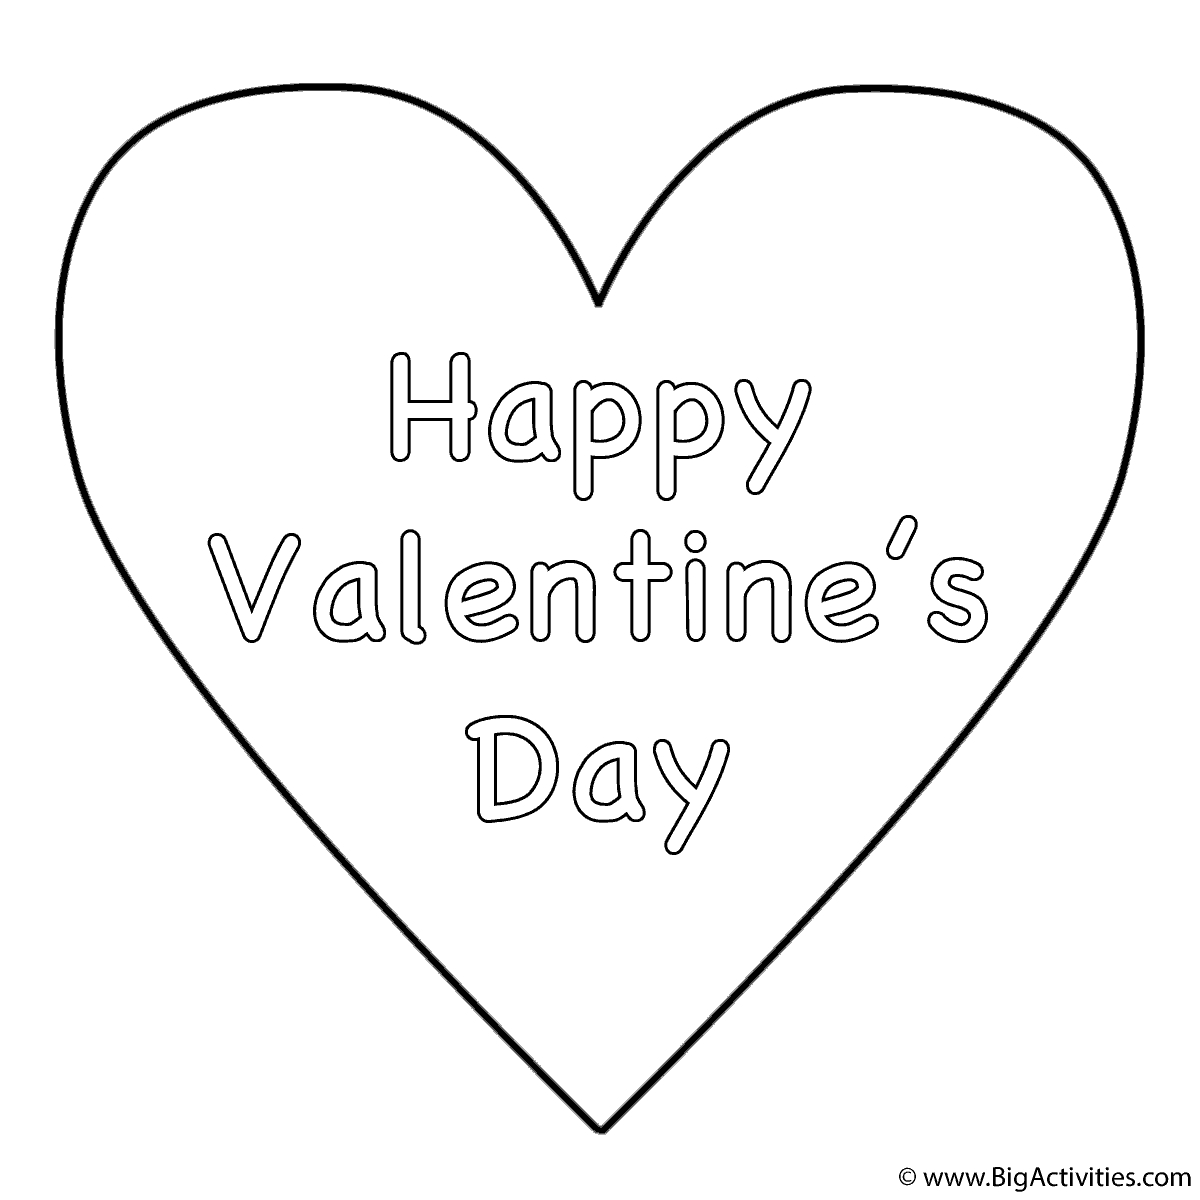 Coloring Pages Valentine Simple Heart Happy Valentines Day Coloring Page Valentines Day